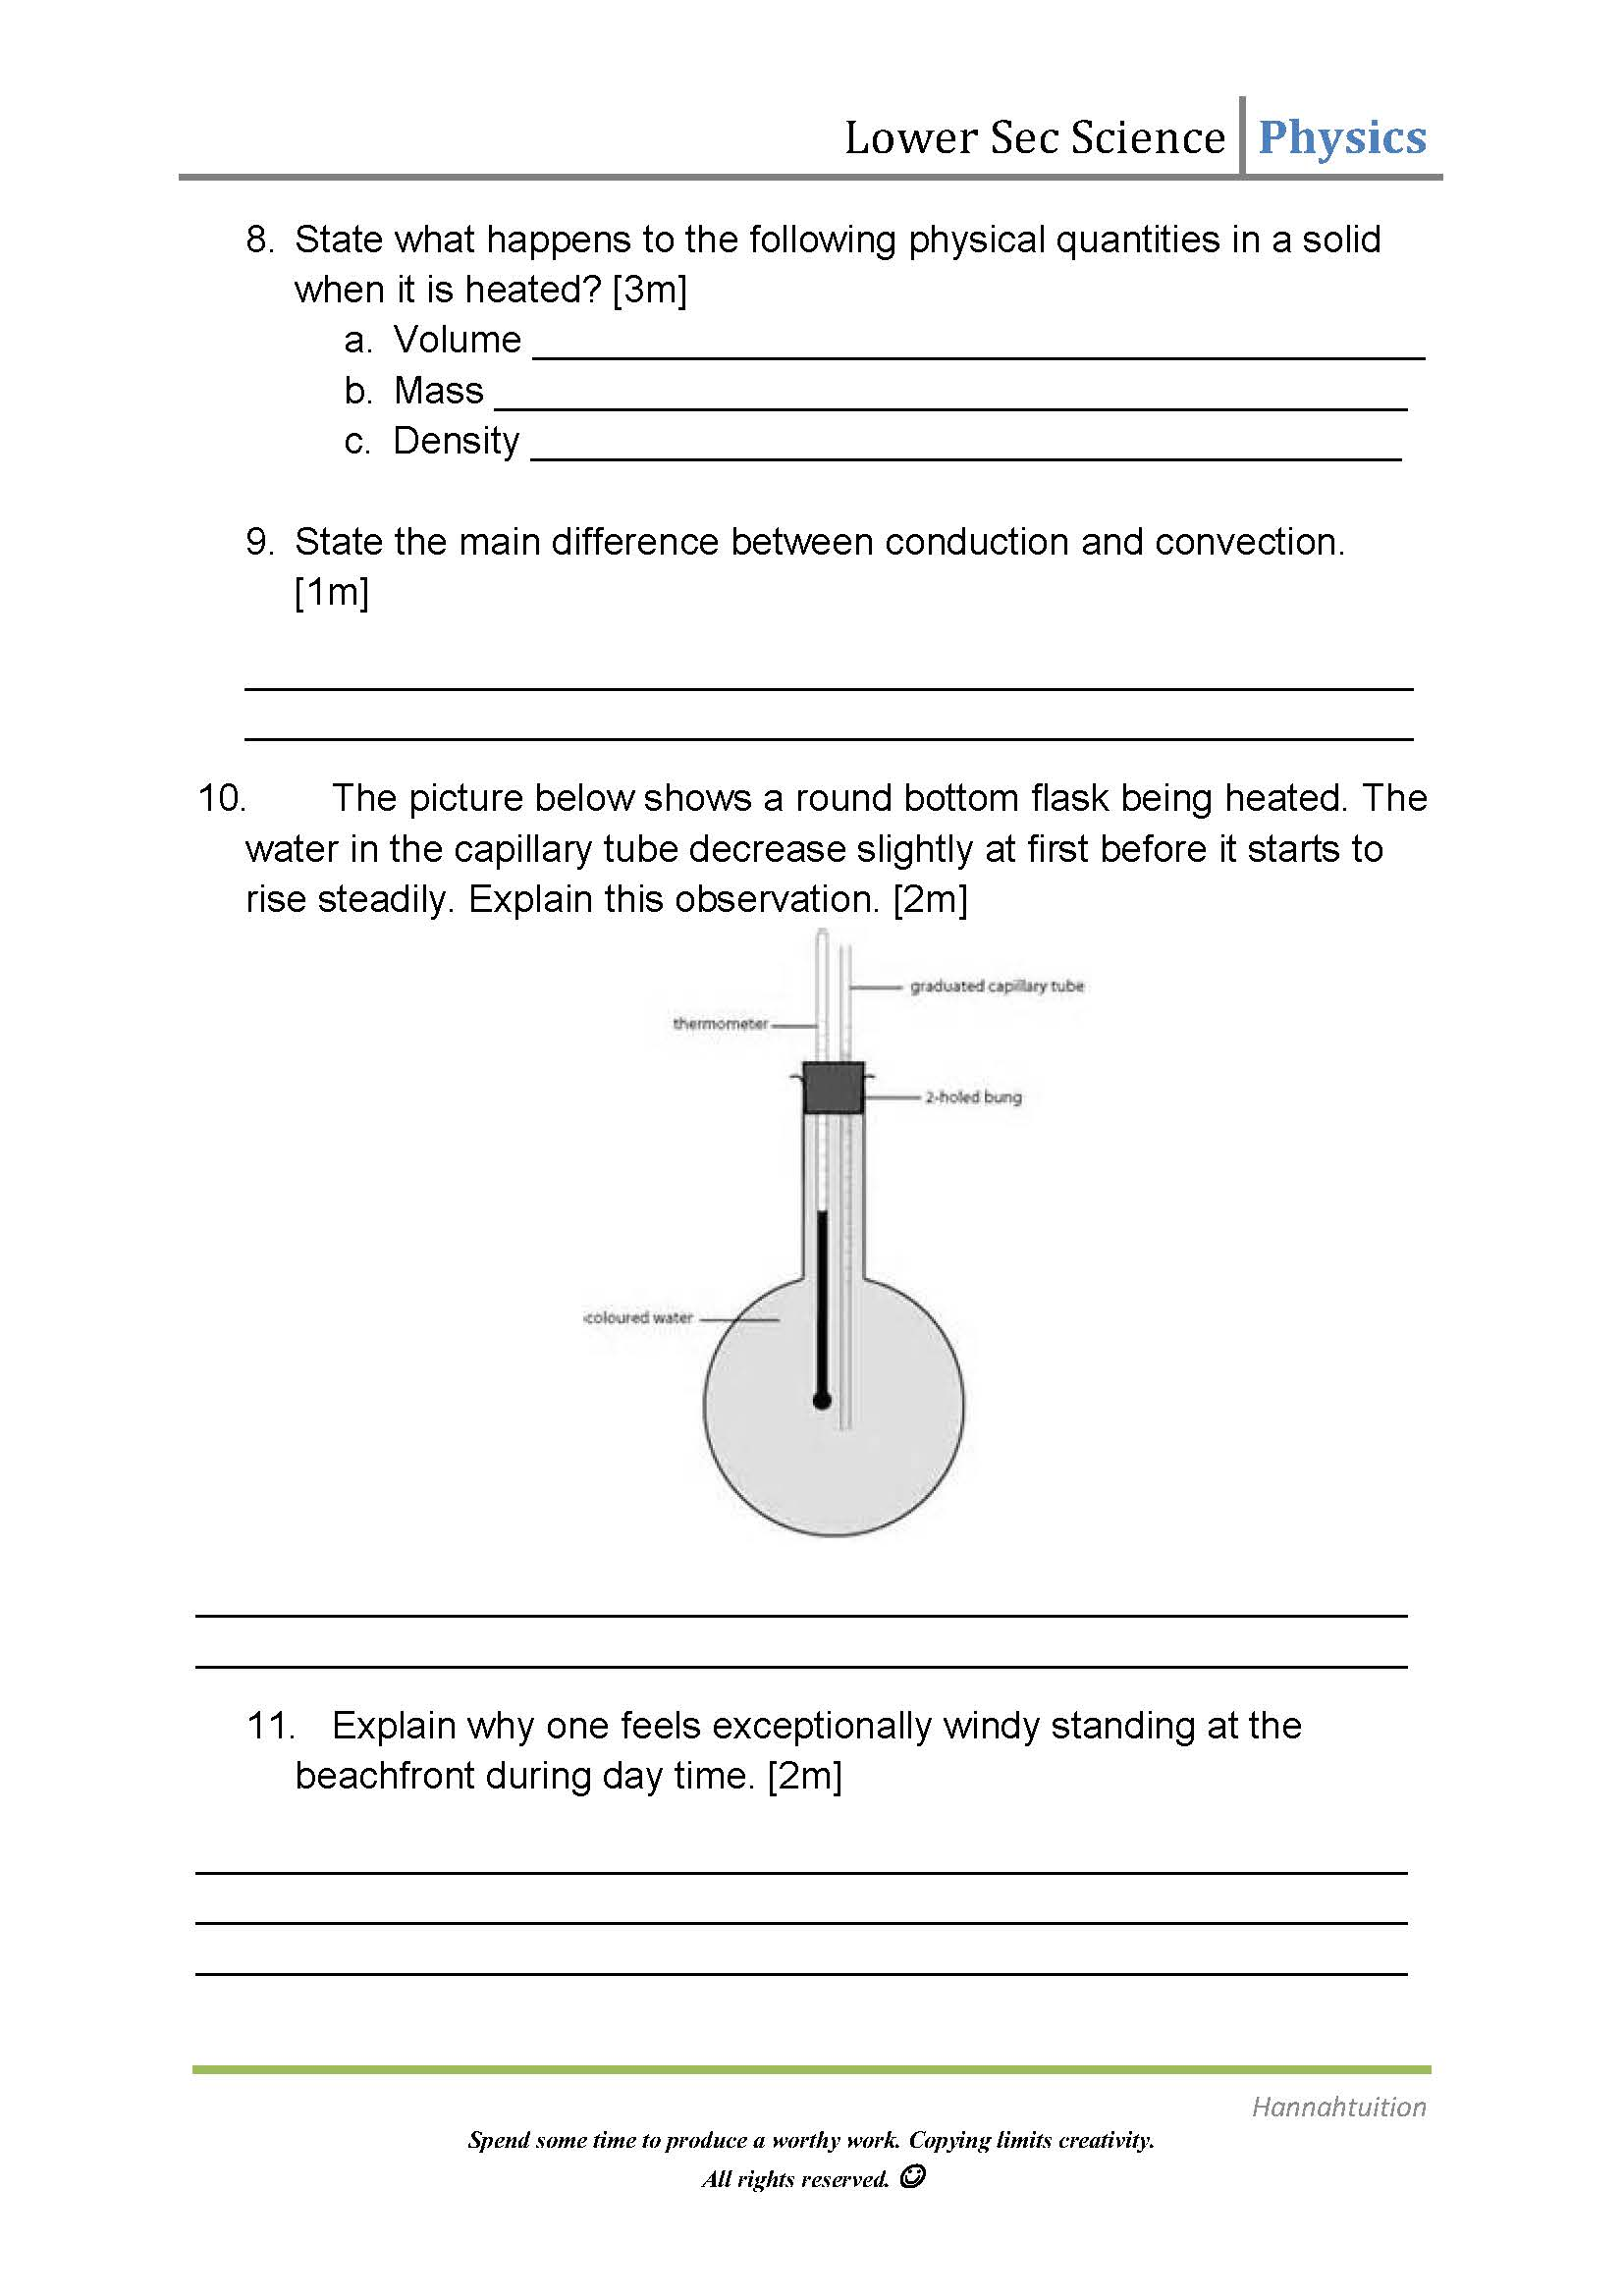 Heat Transfer Heat Transfer Worksheet